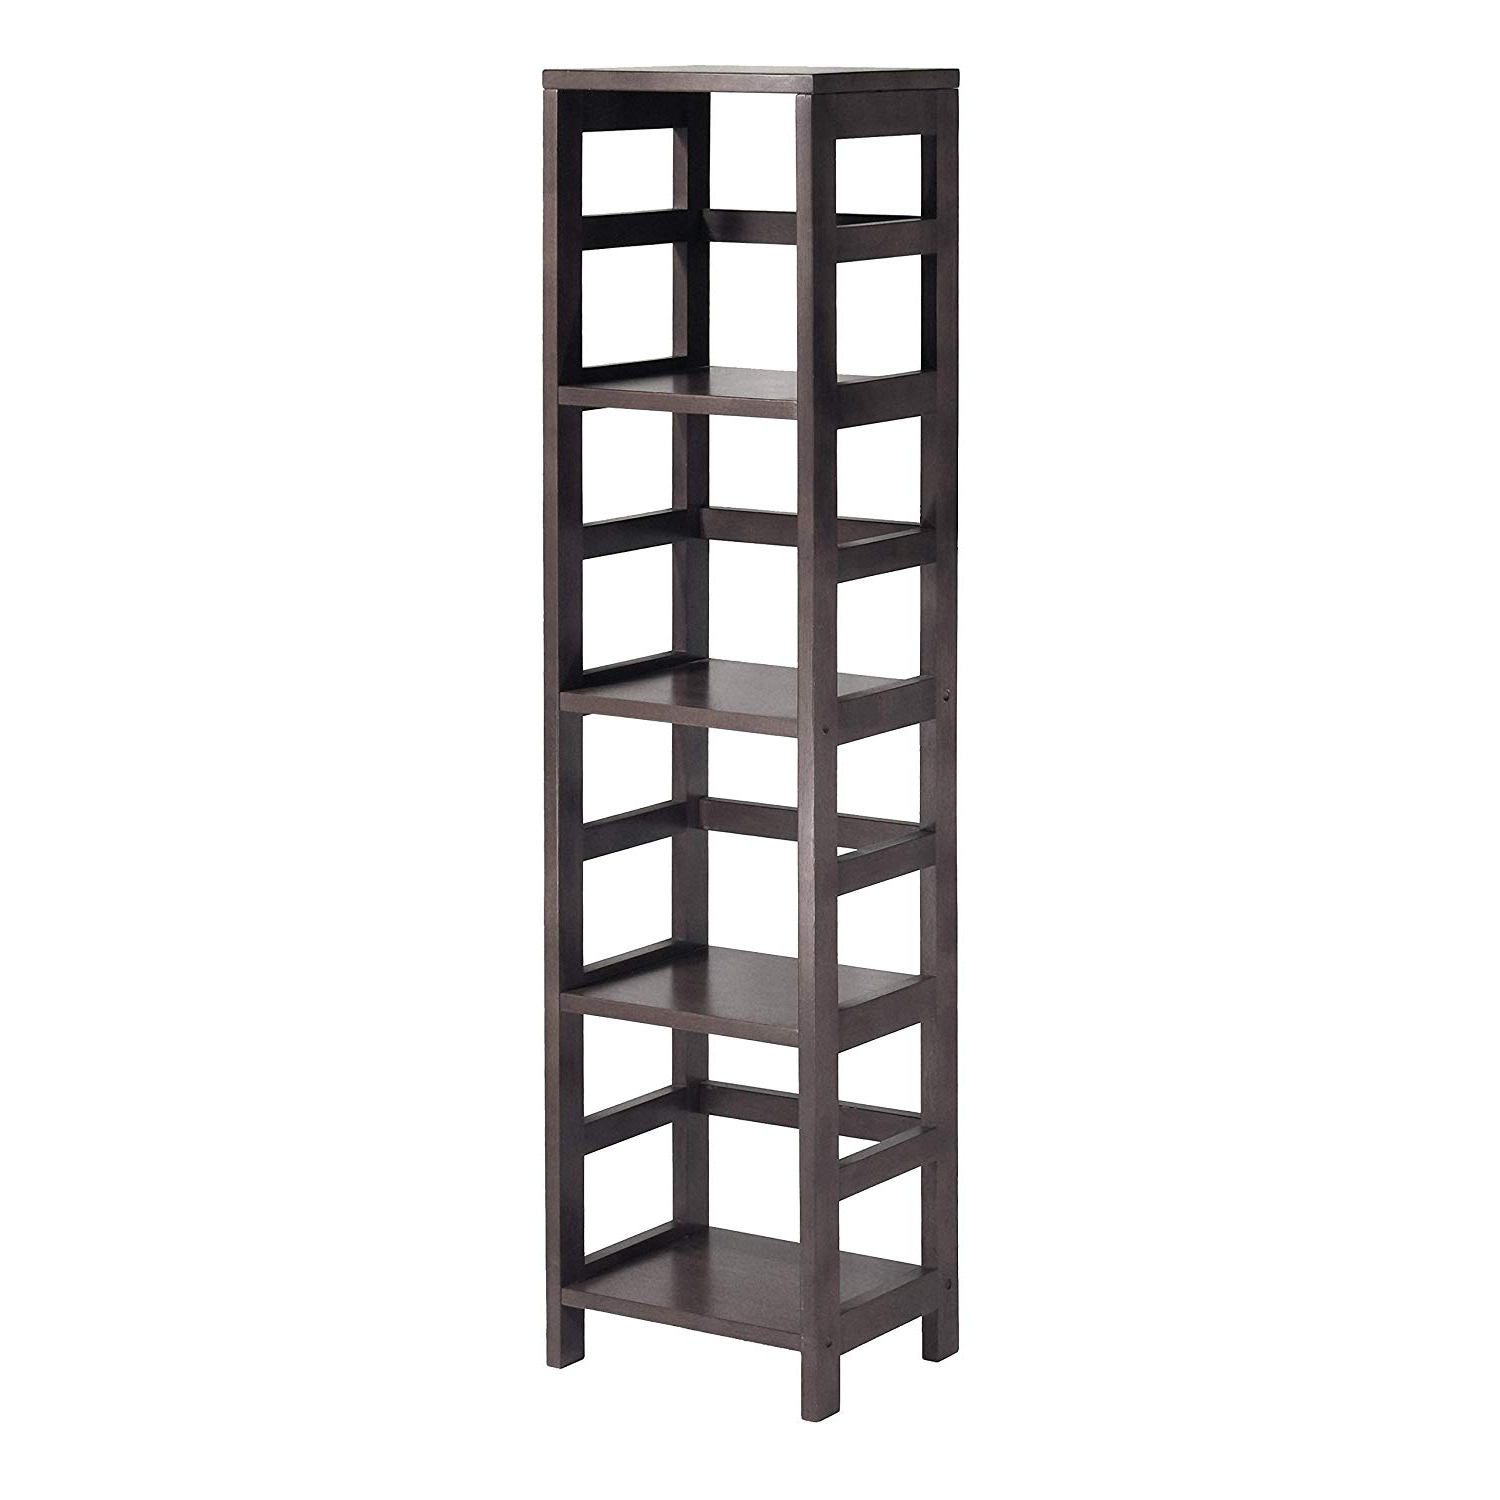 Most Popular Winsome Wood 92514 Leo Model Name Shelving, Small, Espresso With Narrow Profile Standard Cube Bookcases (View 11 of 20)